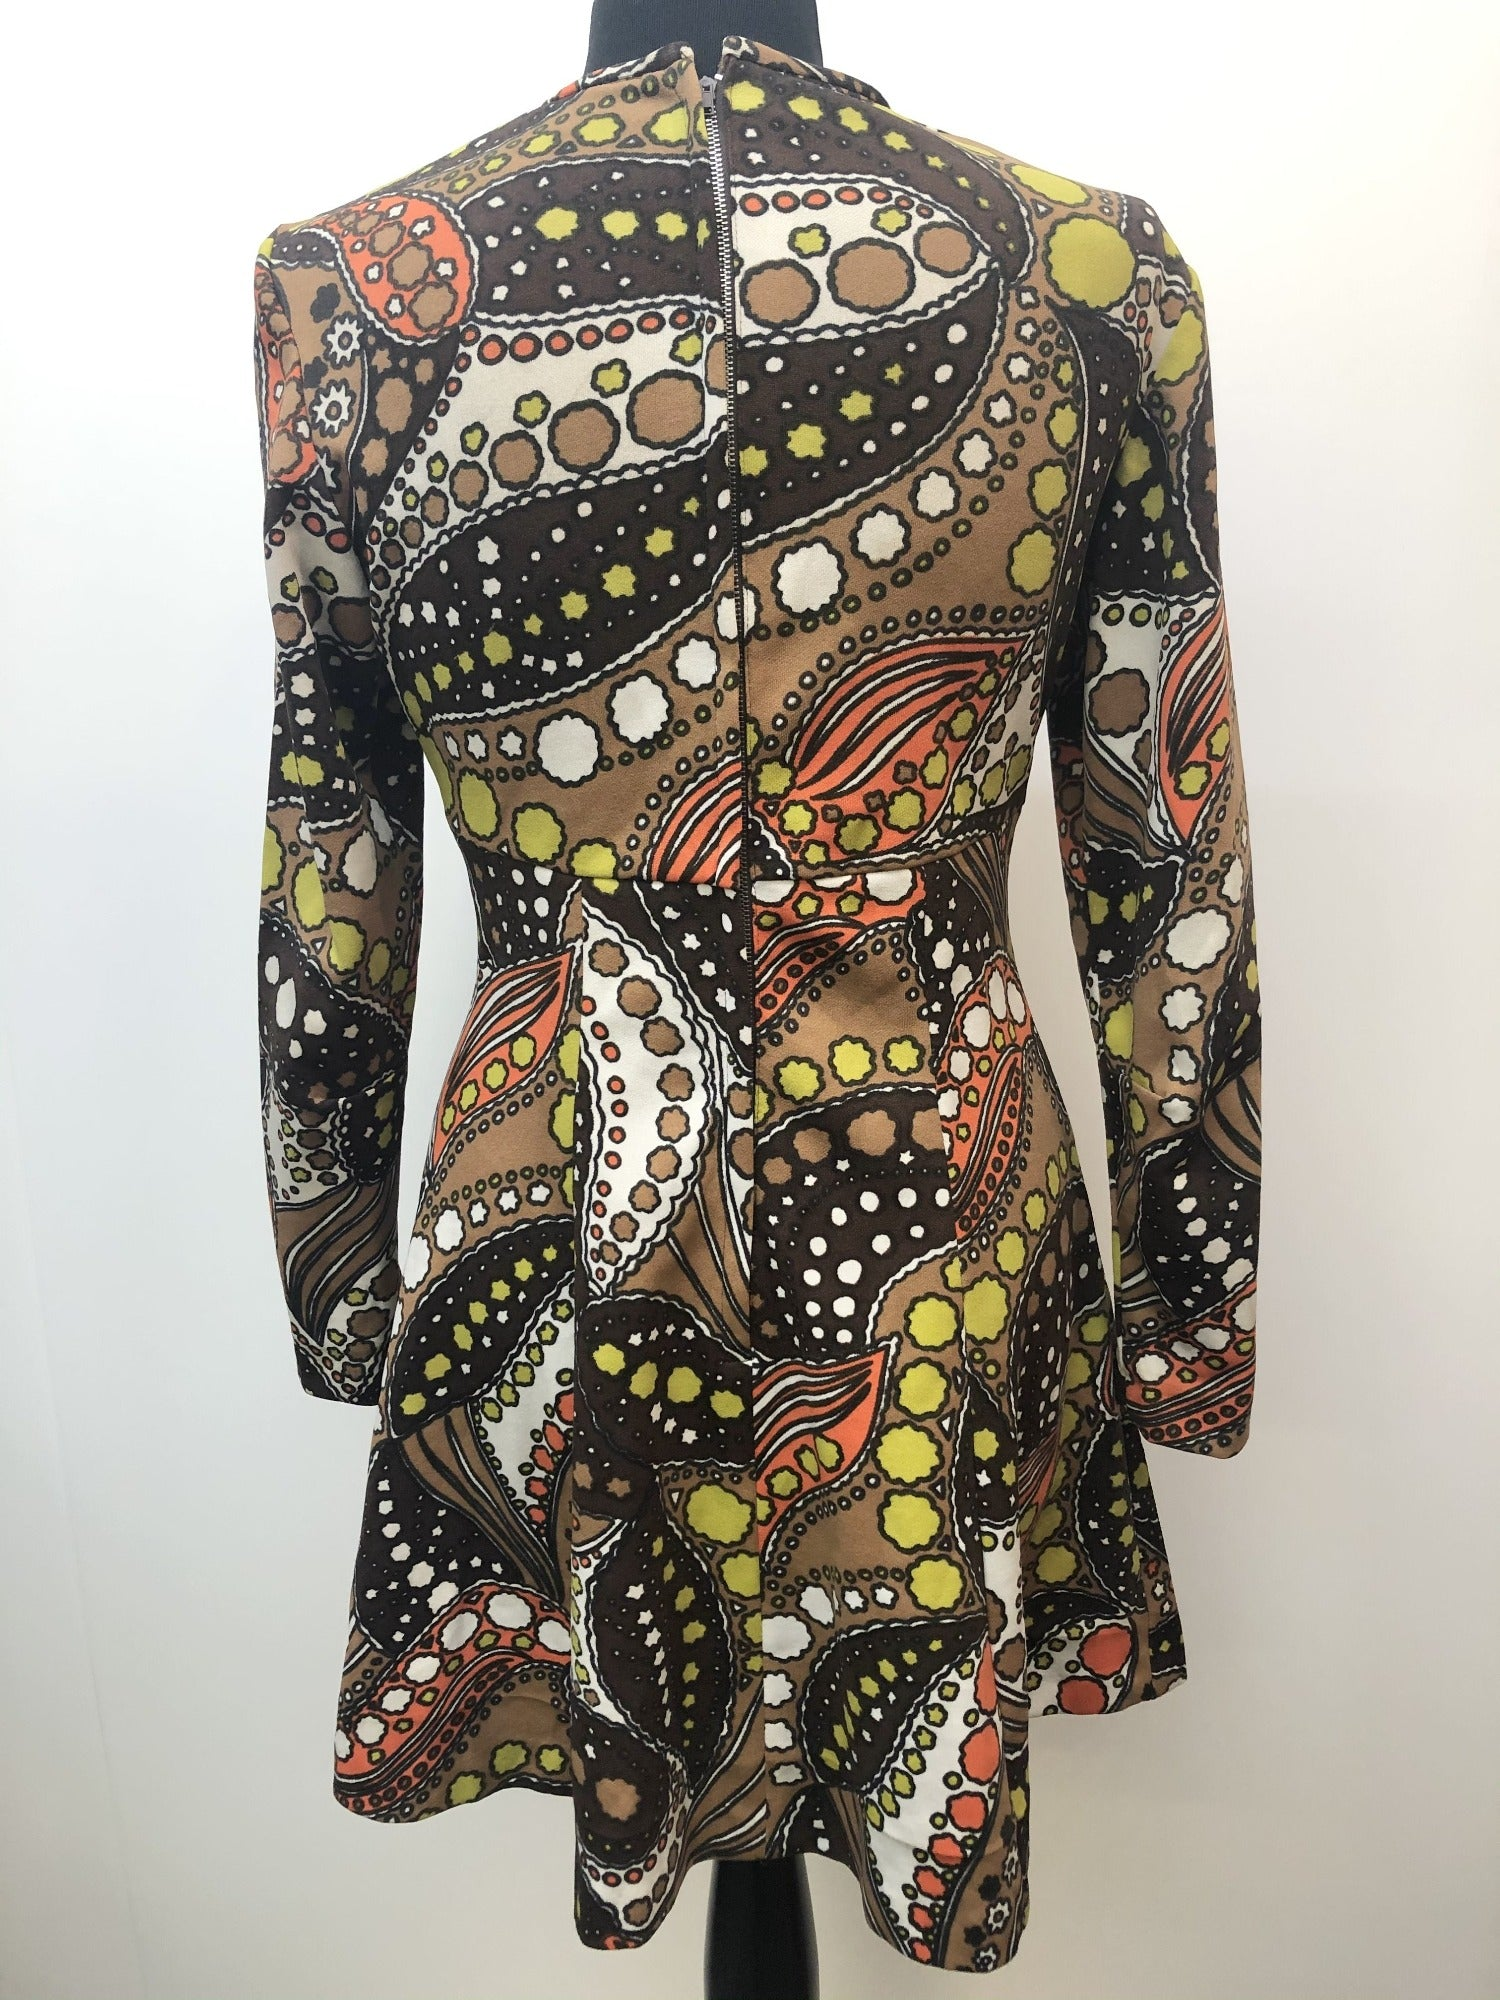 womens vintage retro psychedelic Paisley Print paisley orange MOD mini dress dress brown 60s 1960s 10 Urban Village Vintage